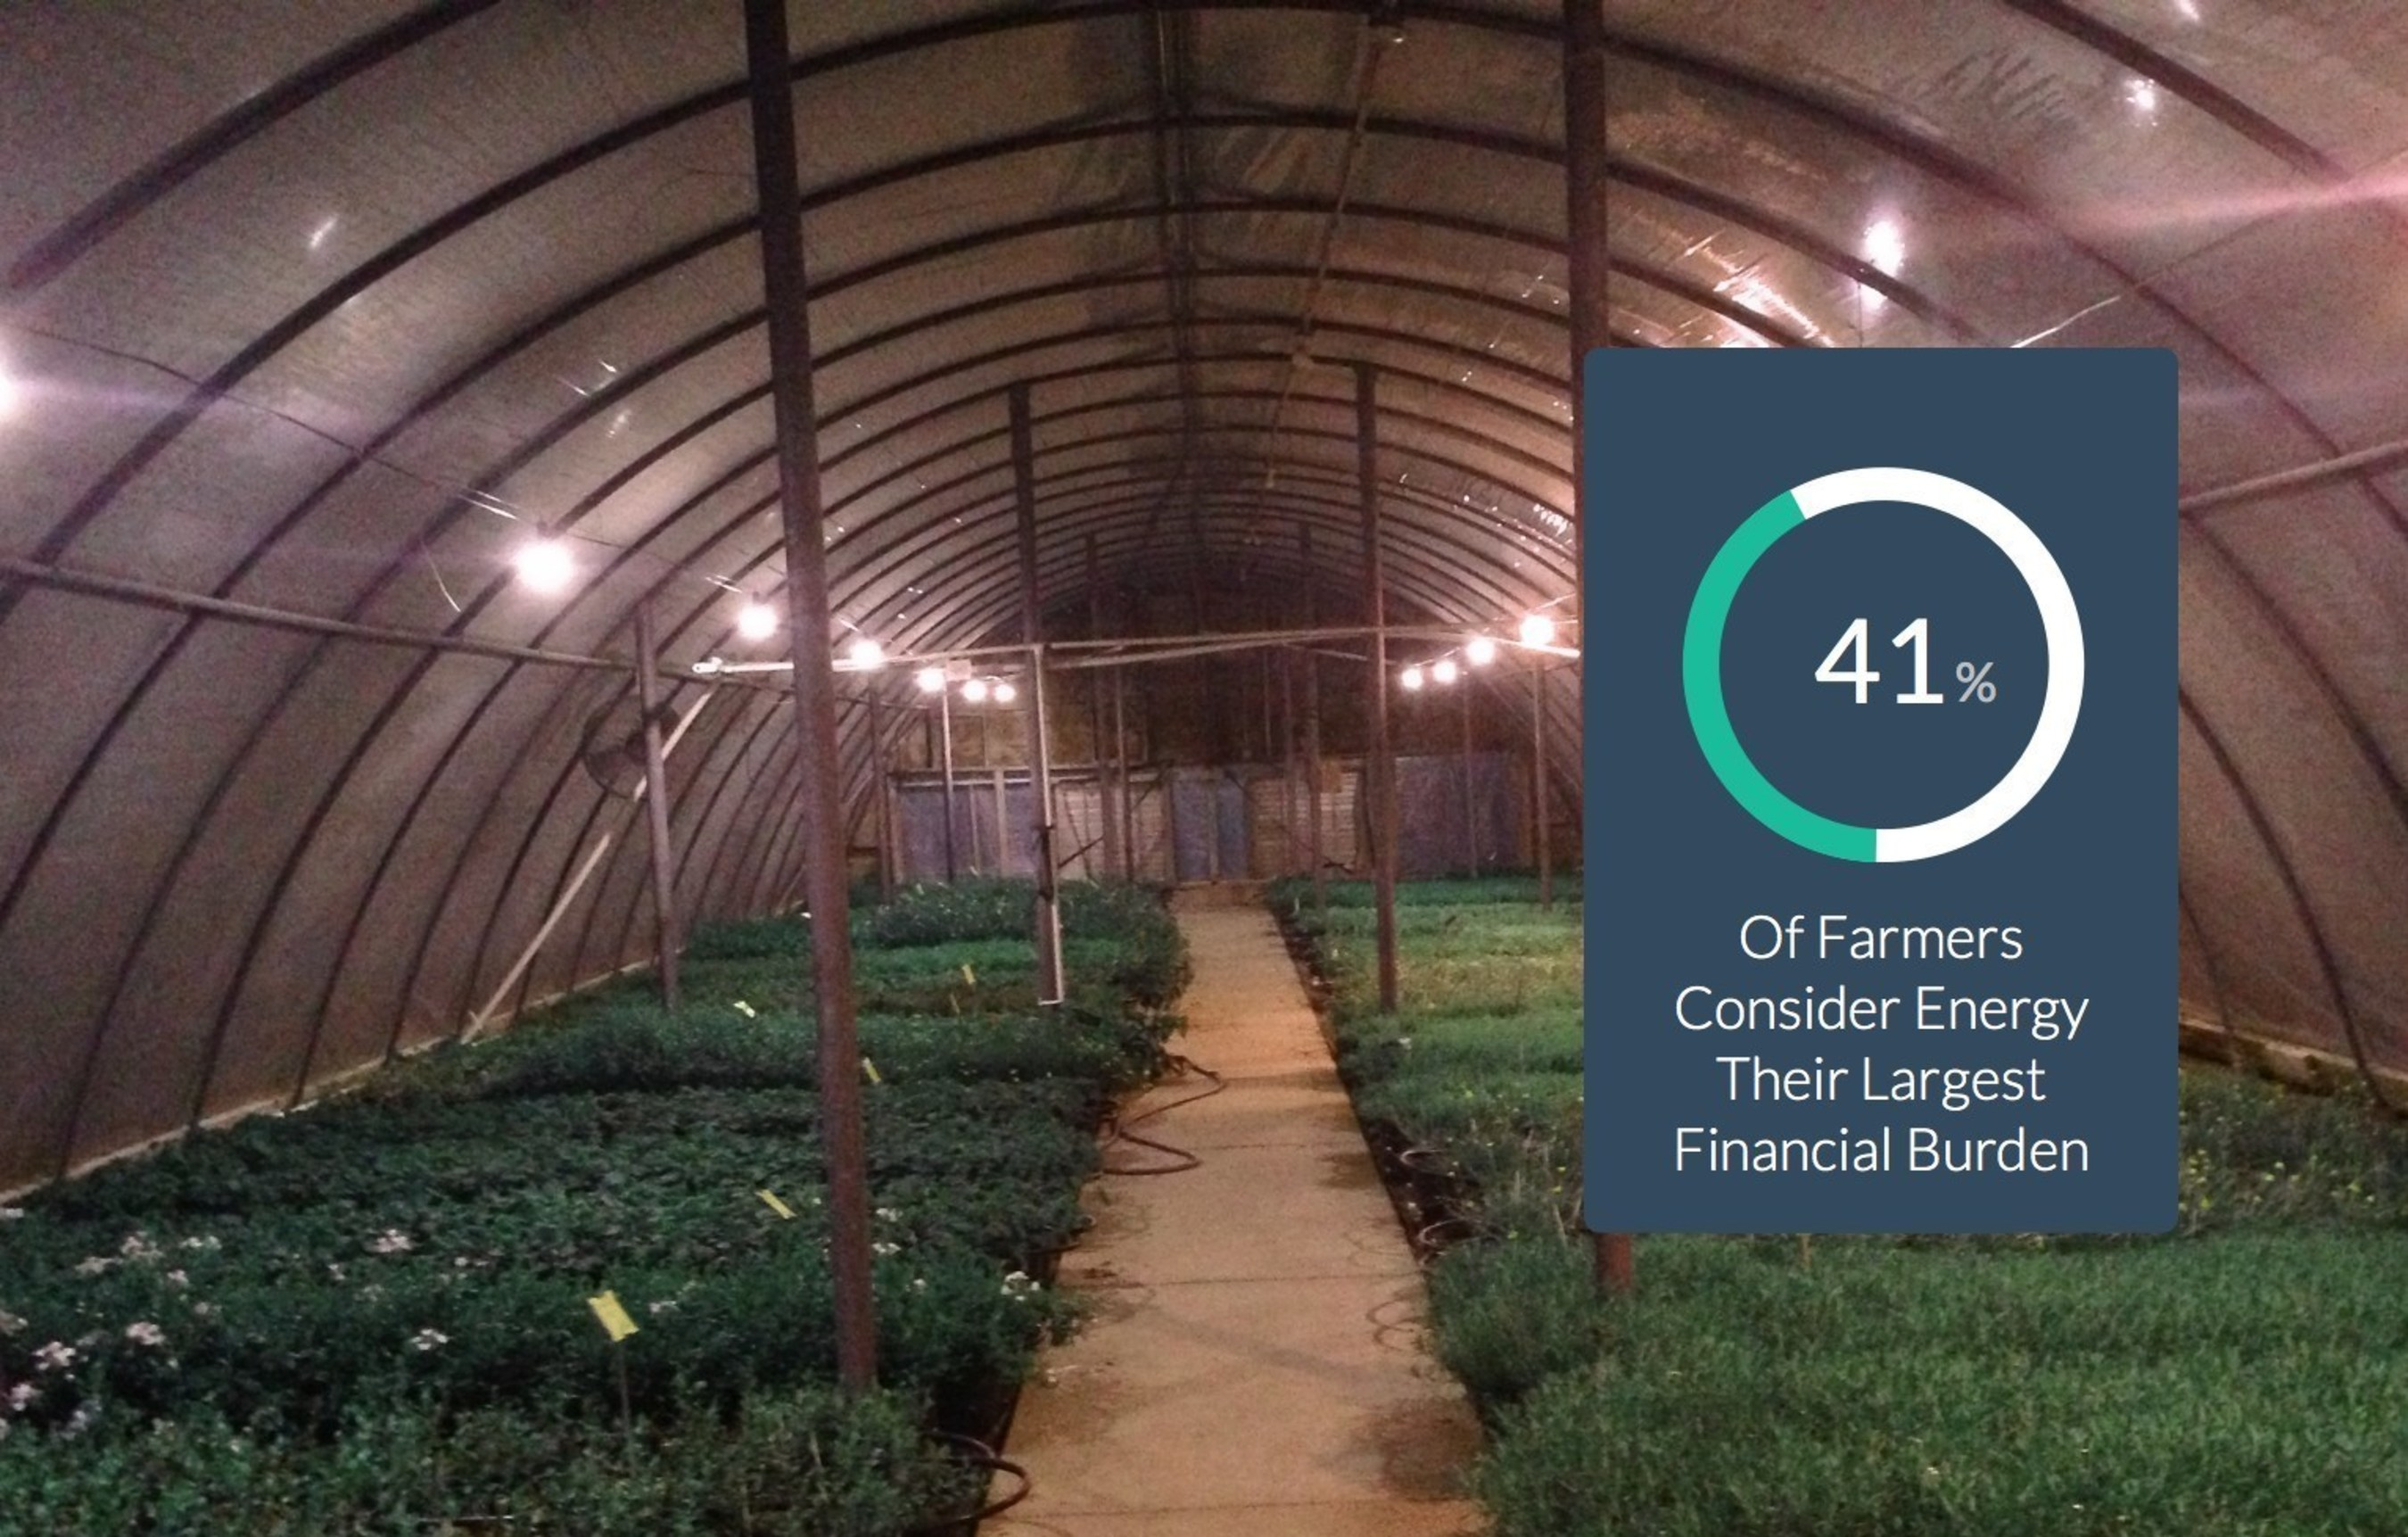 Hort Americas Partners with SparkFund to Provide Financing for Energy Efficient Grow Lights